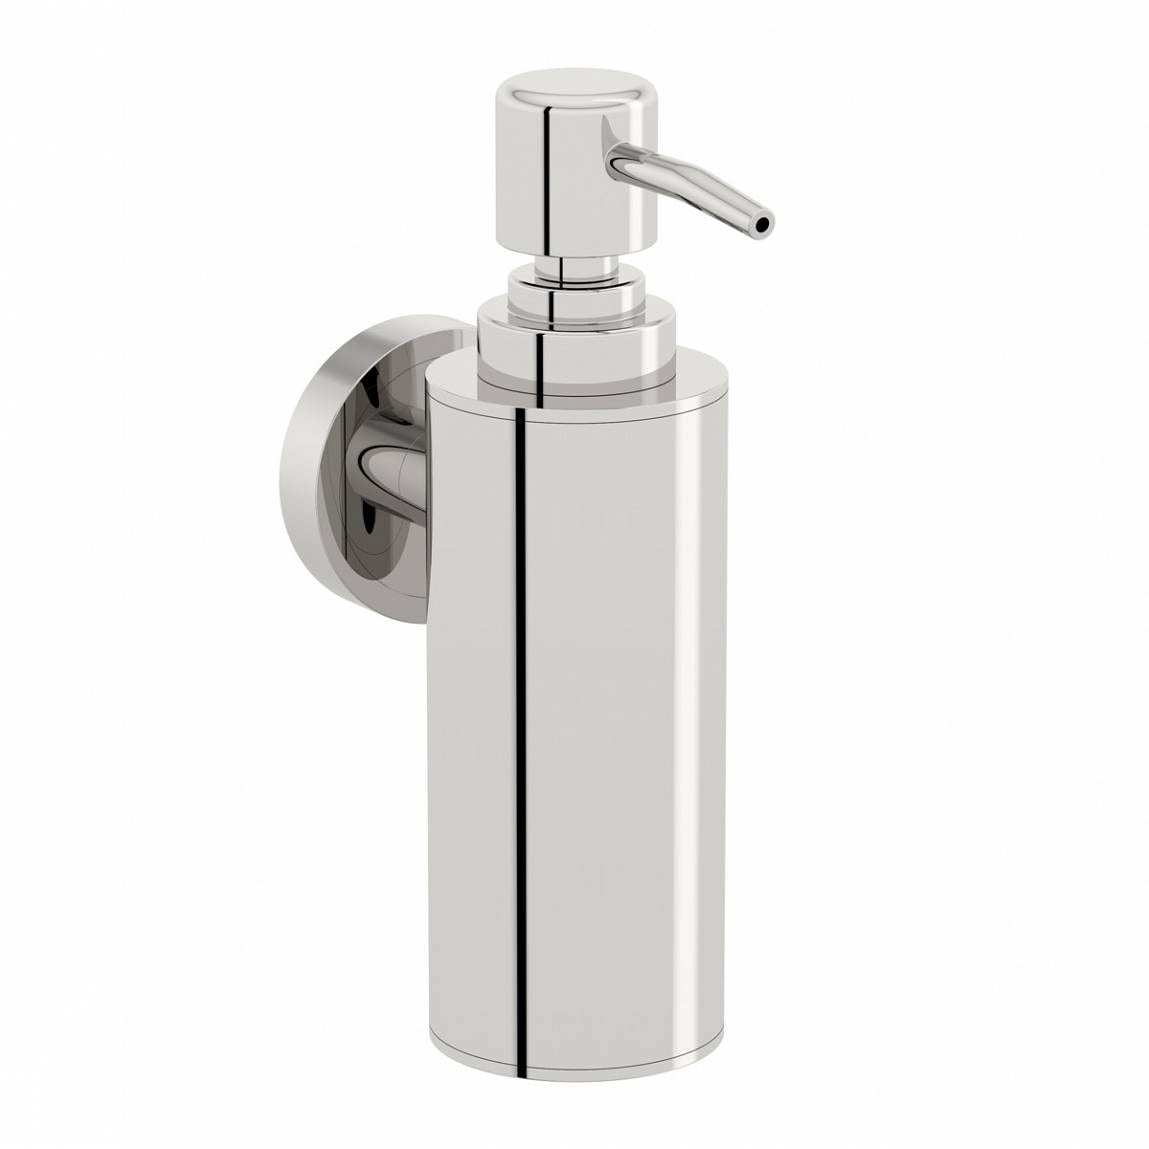 Wall Mounted Soap Dispenser Options Wall Mounted Slim Stainless Steel Soap Dispenser